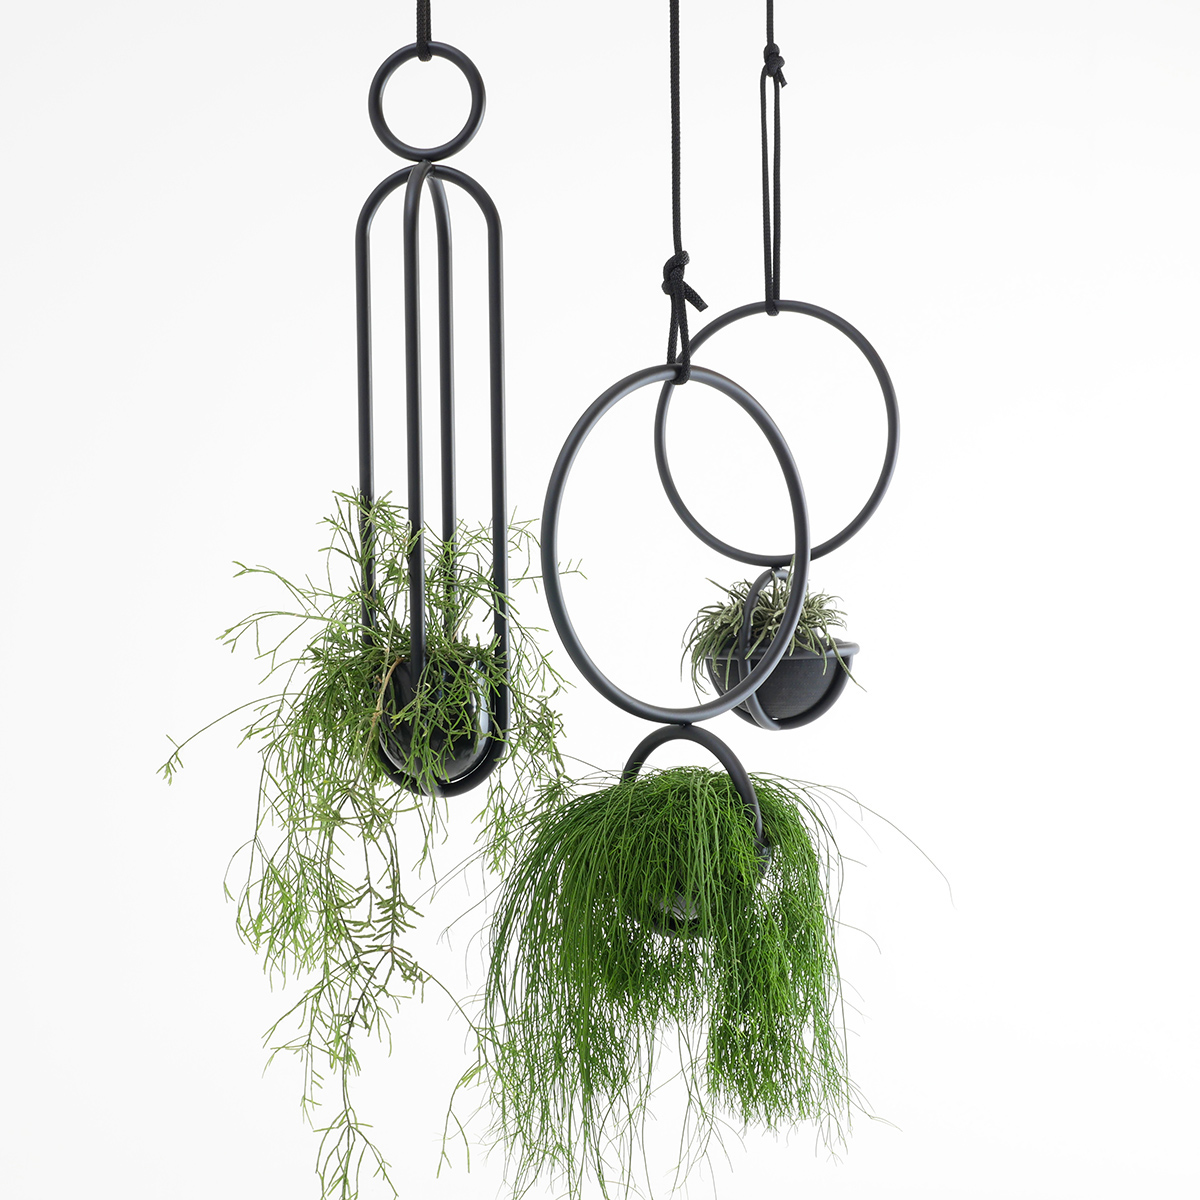 Blumenkugel and Blumenampel, hangingplants object from Zascho Petkow and Andreas Haussmann, vase from Birgit Severin